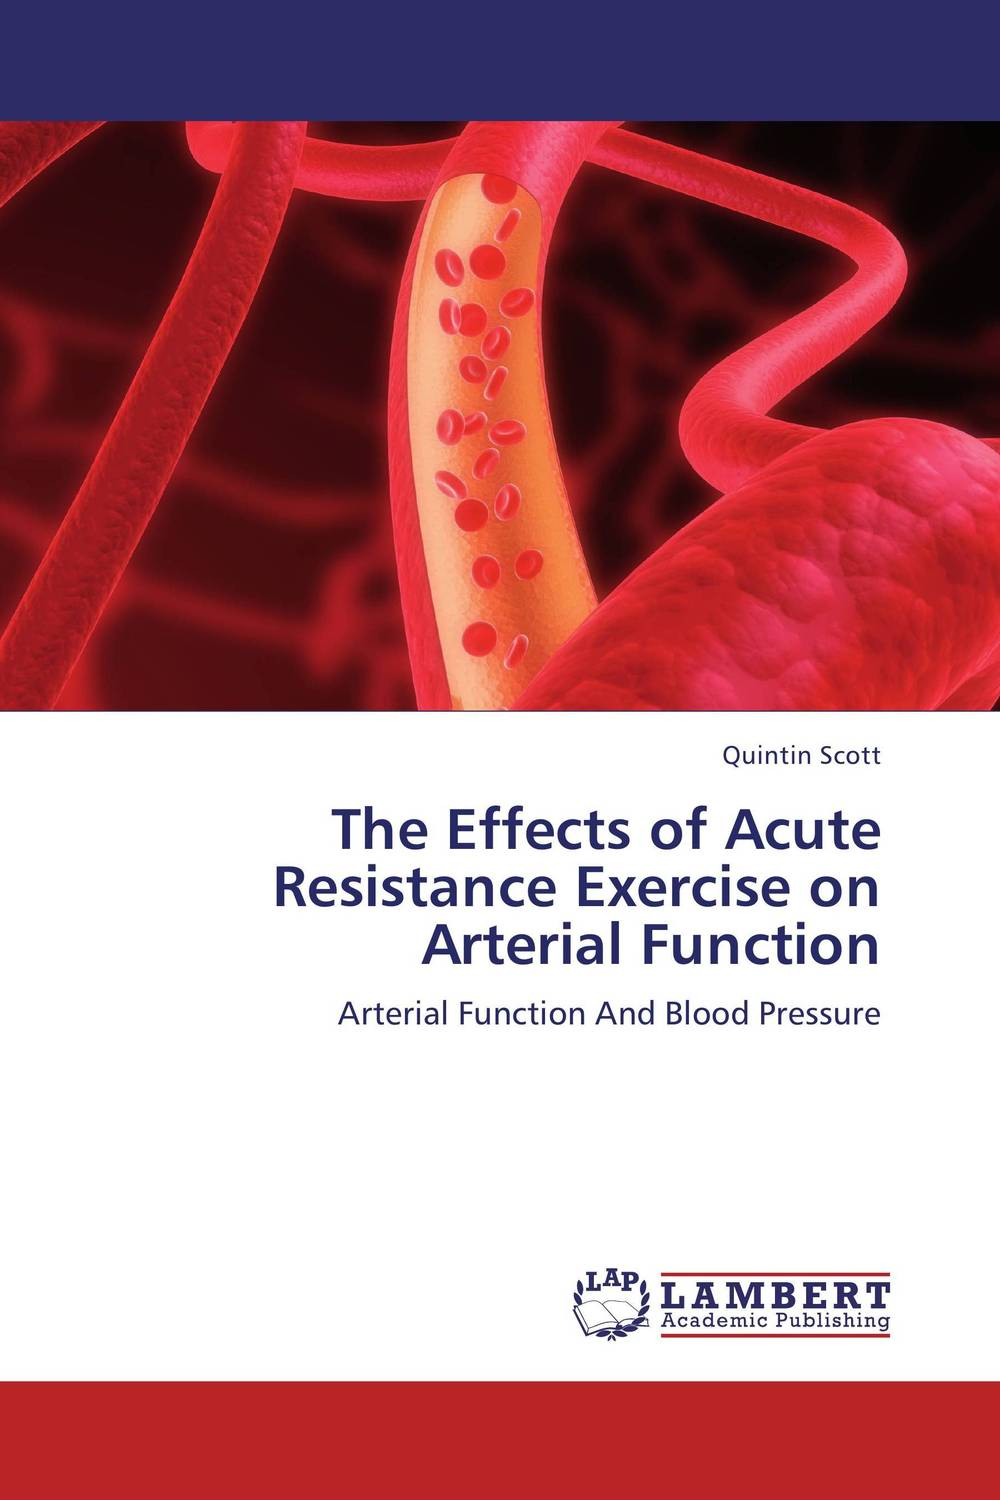 The Effects of Acute Resistance Exercise on Arterial Function effects of exercise in different temperatures in type 1 diabetics